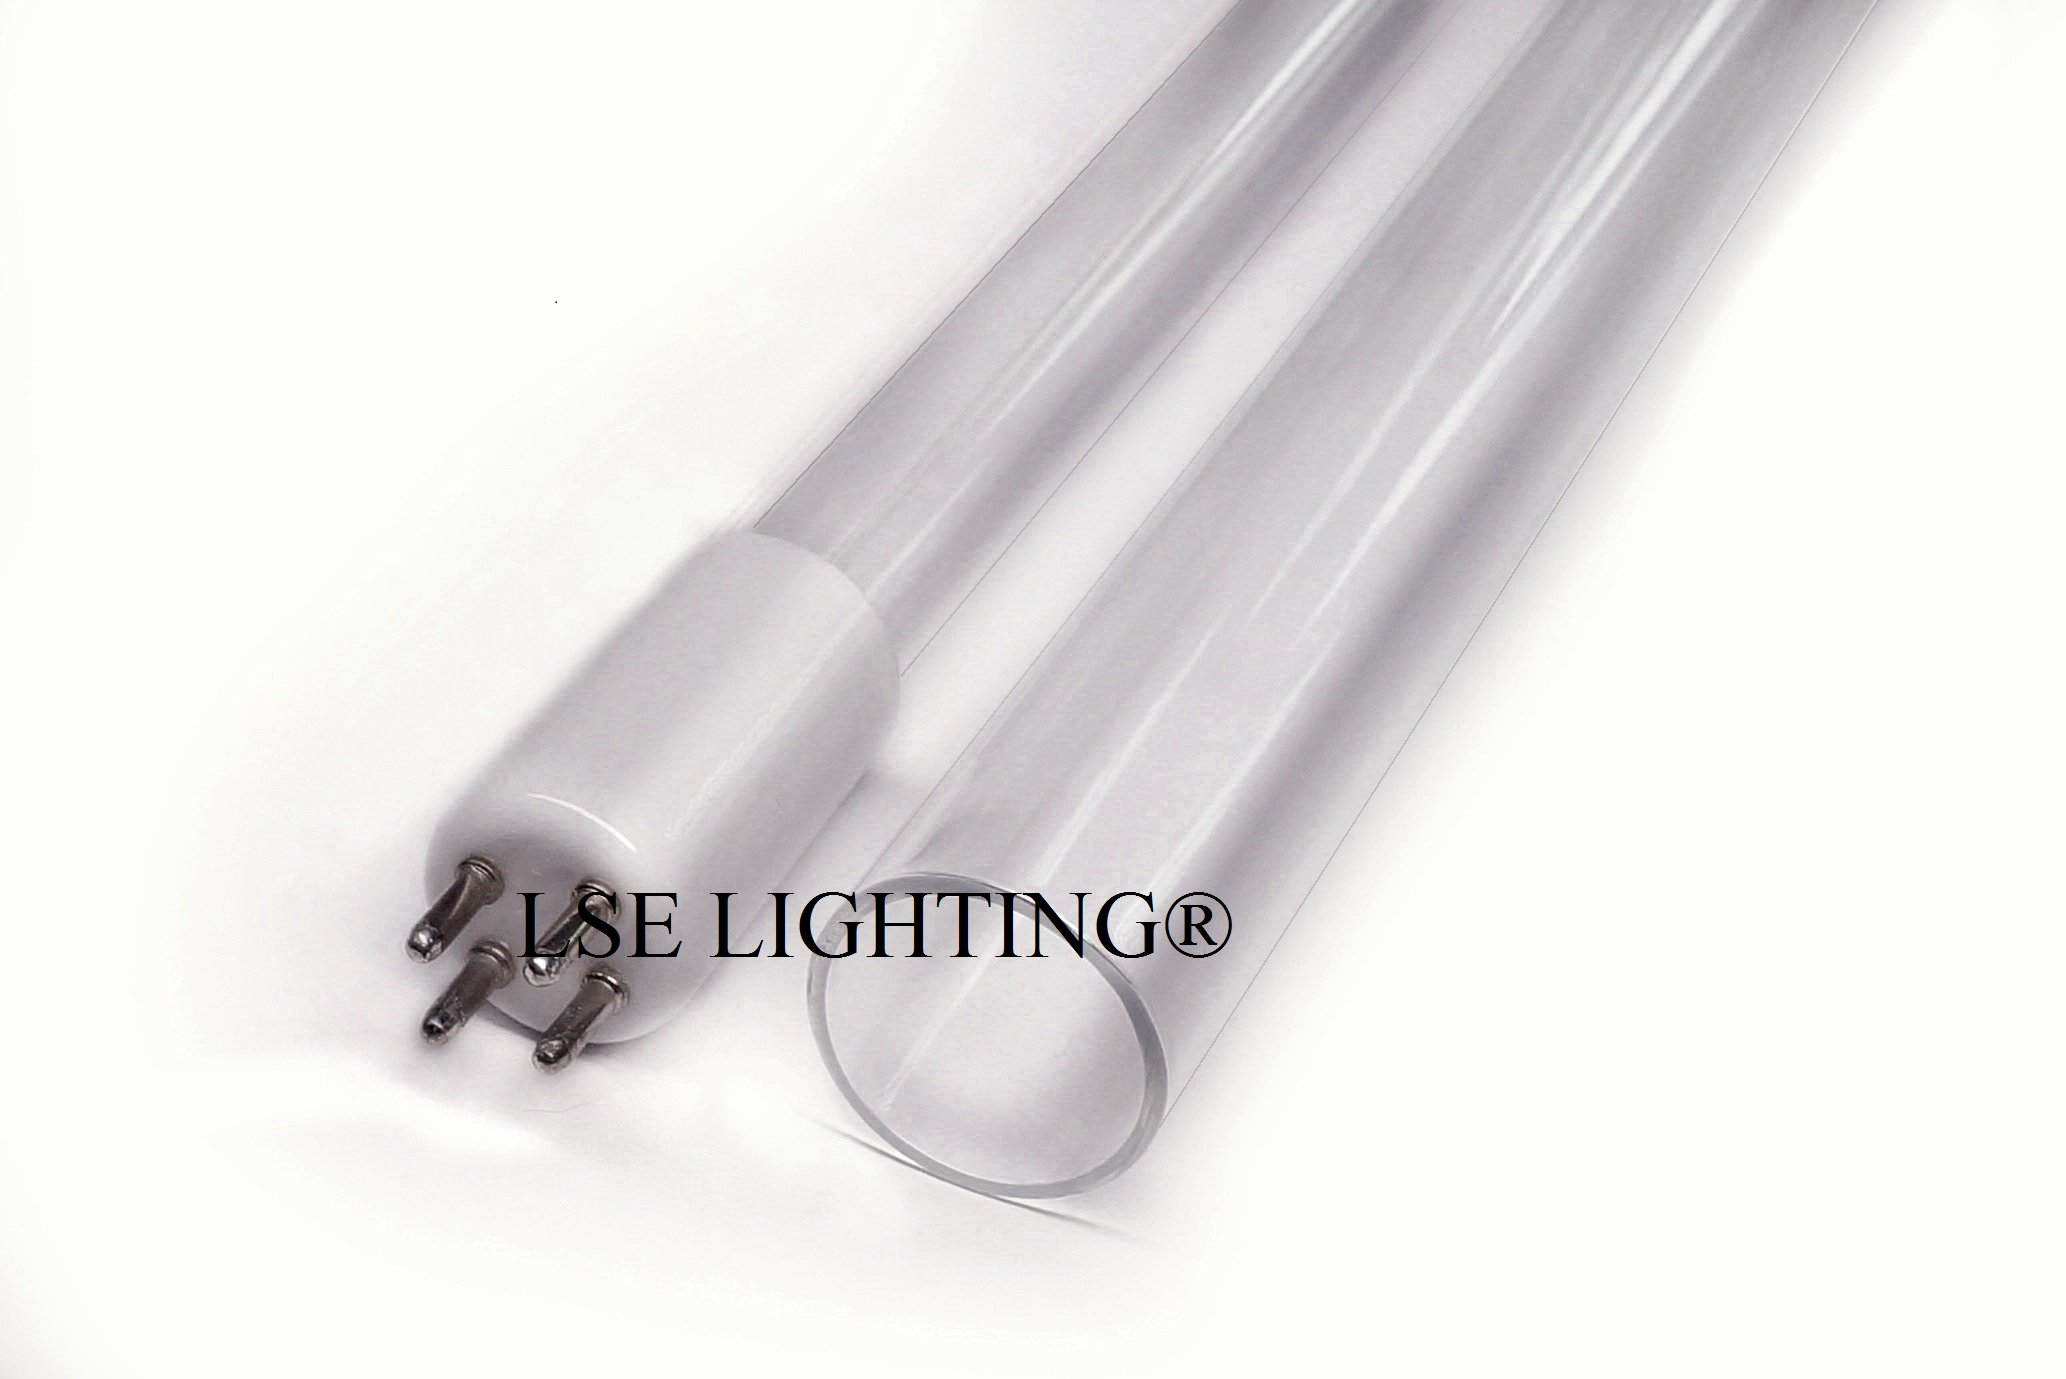 LSE Lighting Combo 70-18420 (S) UV Lamp and Sleeve for Elektra Pro EP-20 Delta E-20 EA-3H-20 EA-4H-20 by LSE Lighting